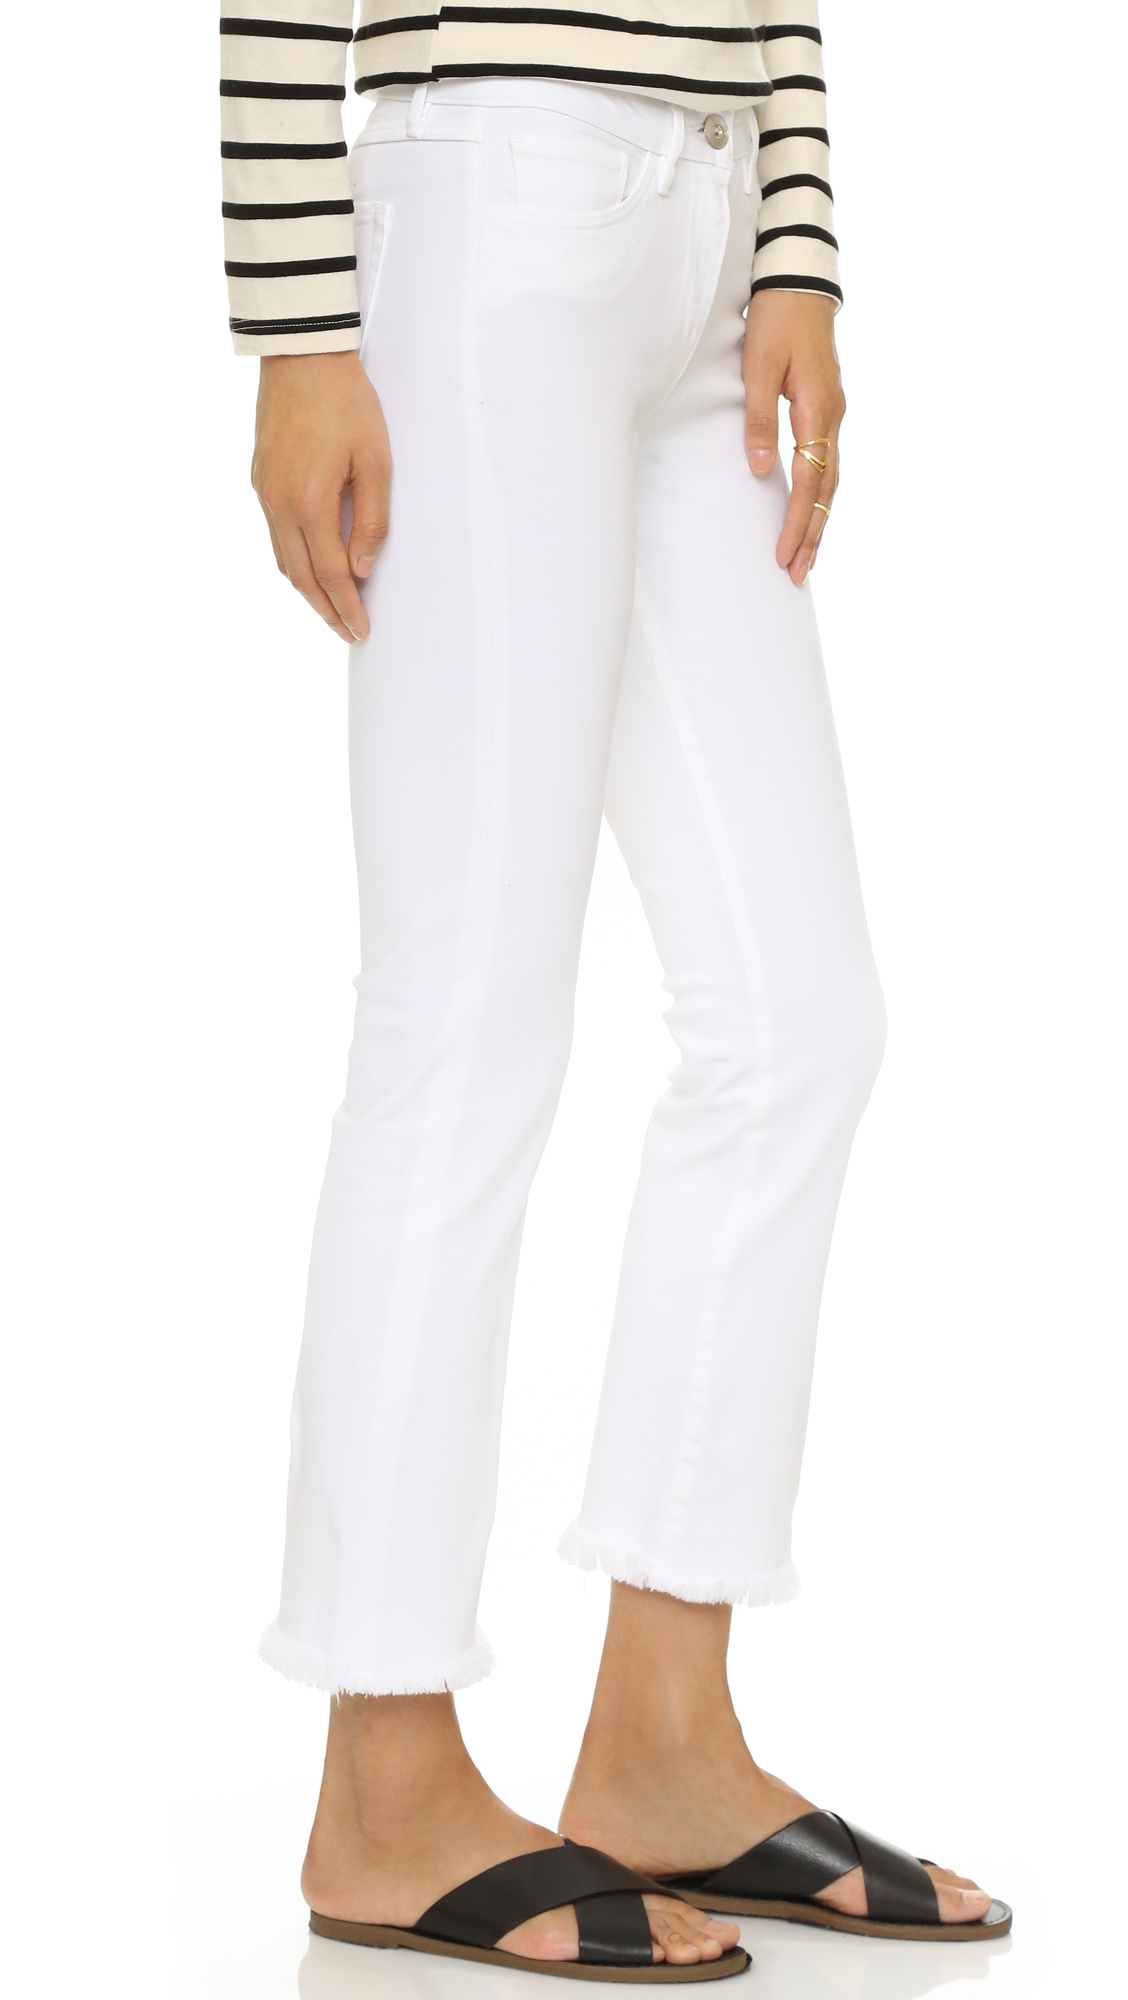 White cropped bootcut jeans